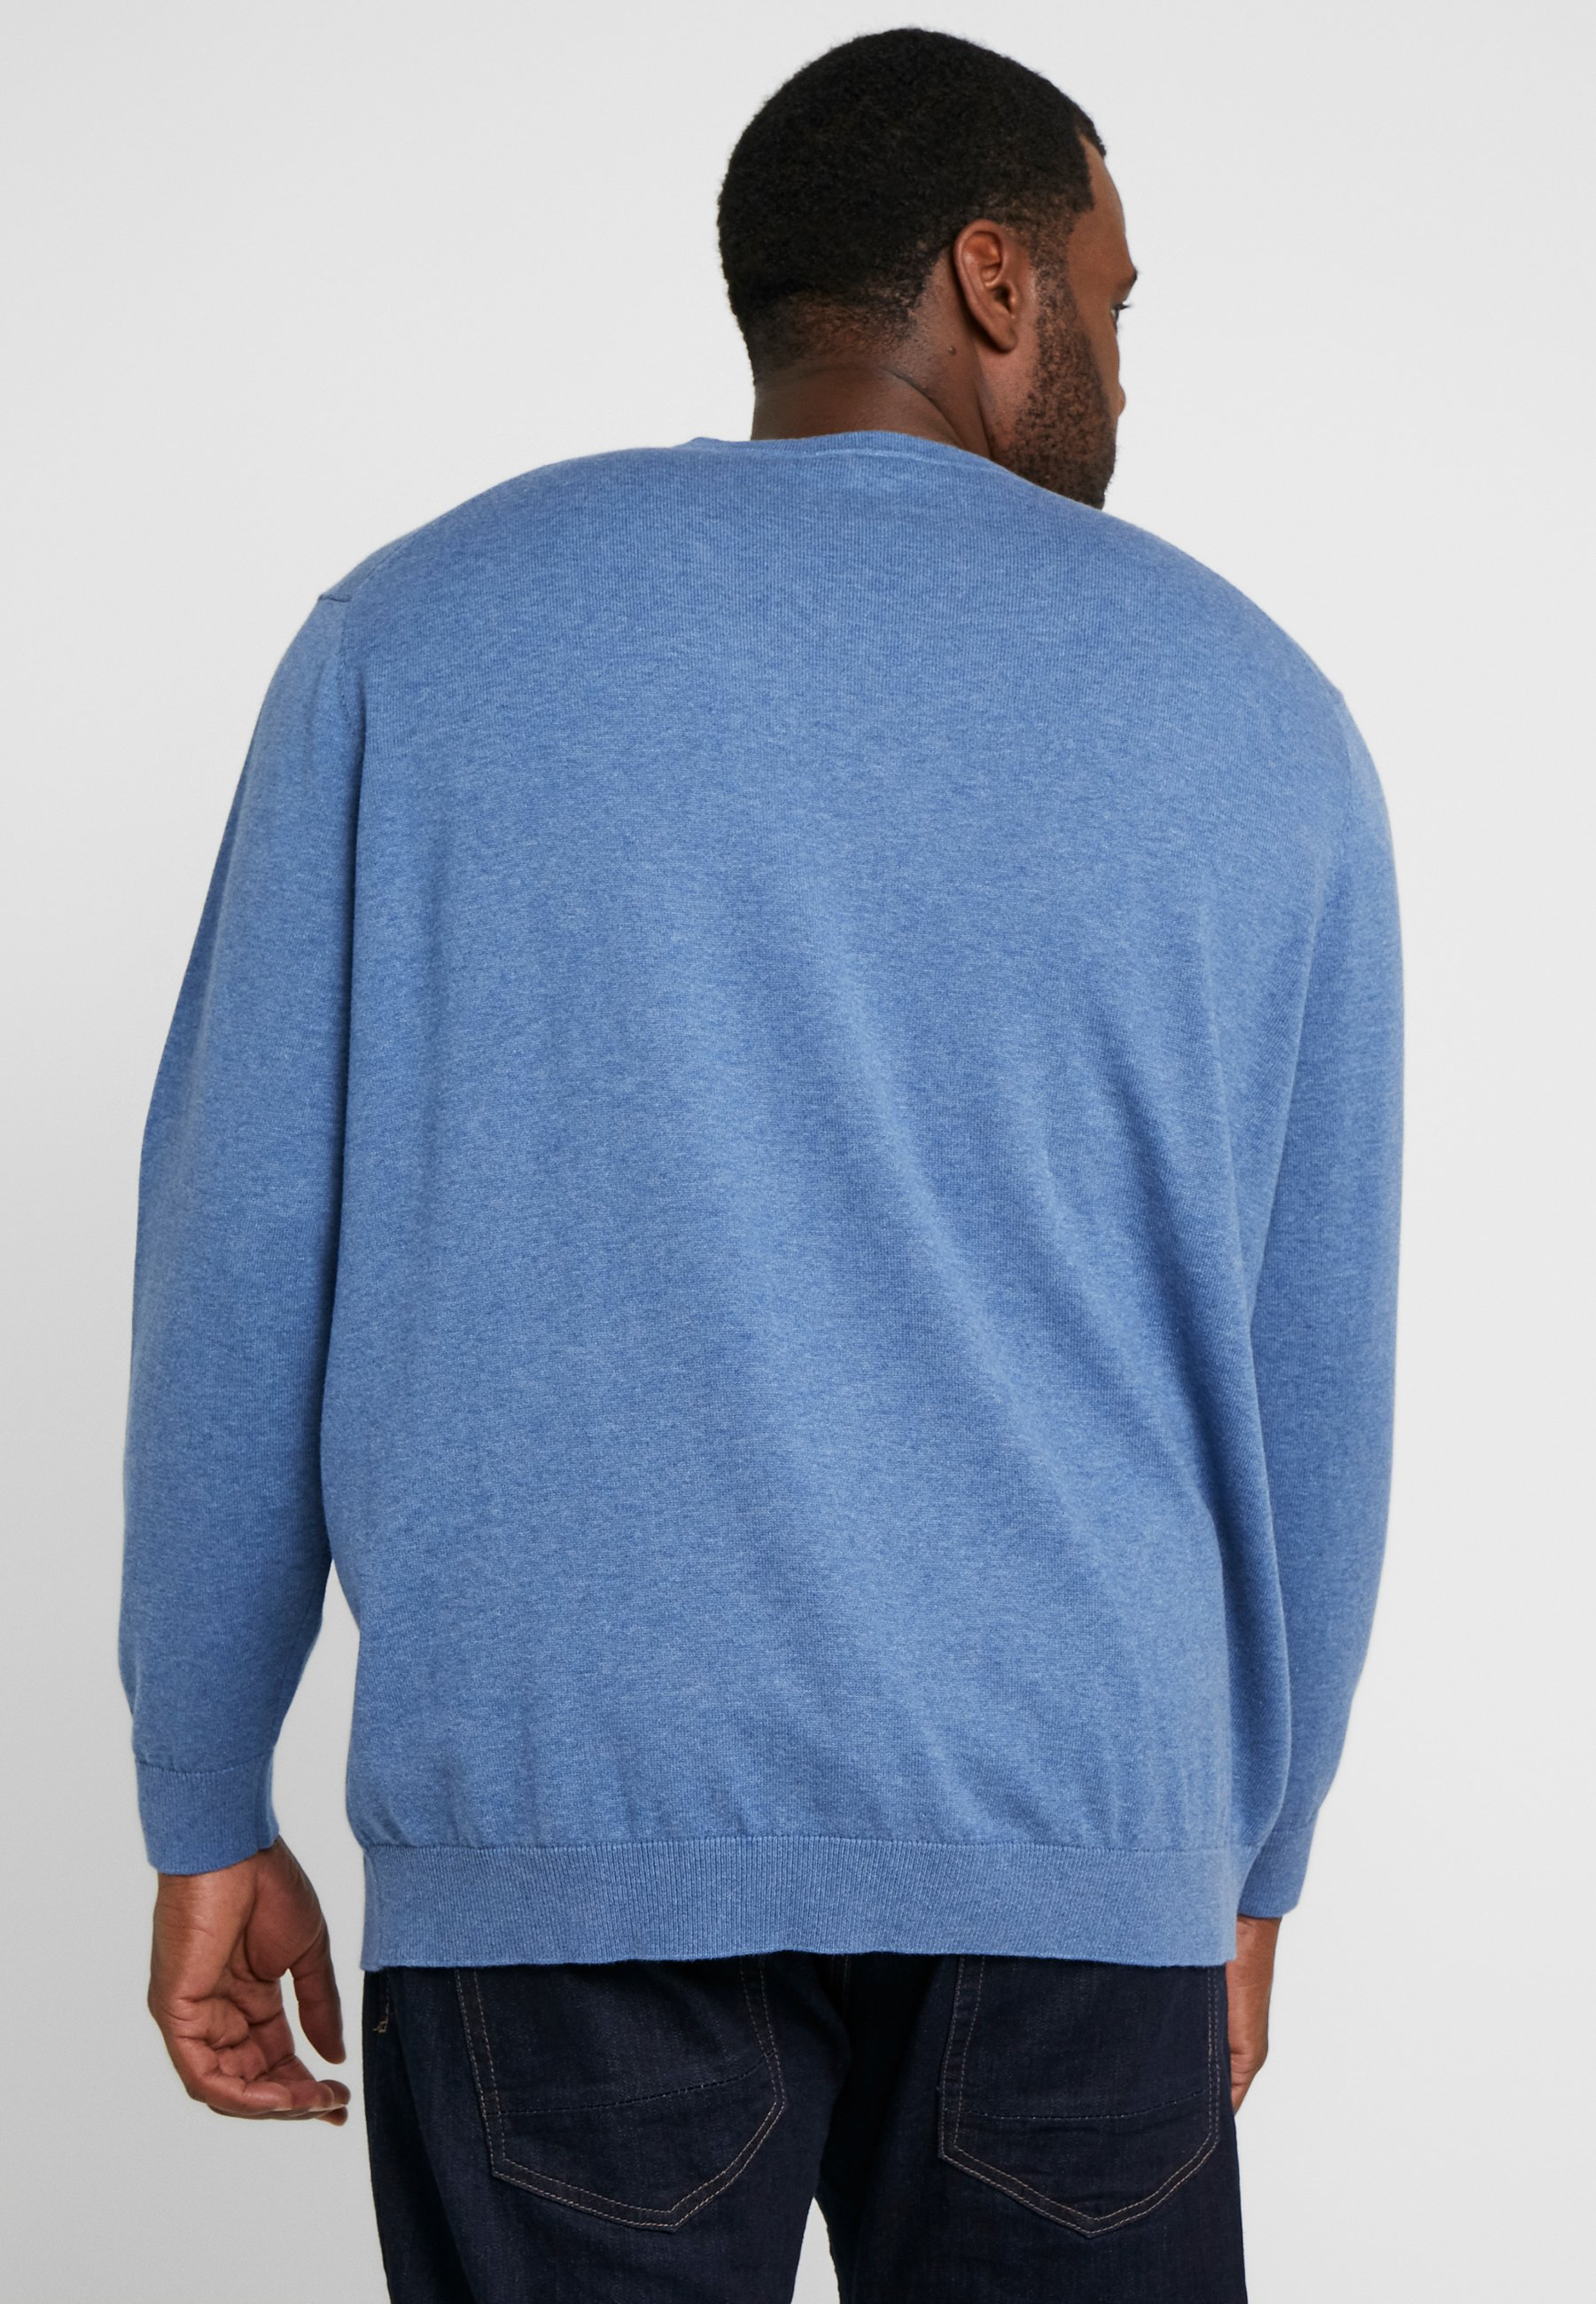 Lacoste Blue PulloverAlby Chine Lacoste navy qSUMVpLzG